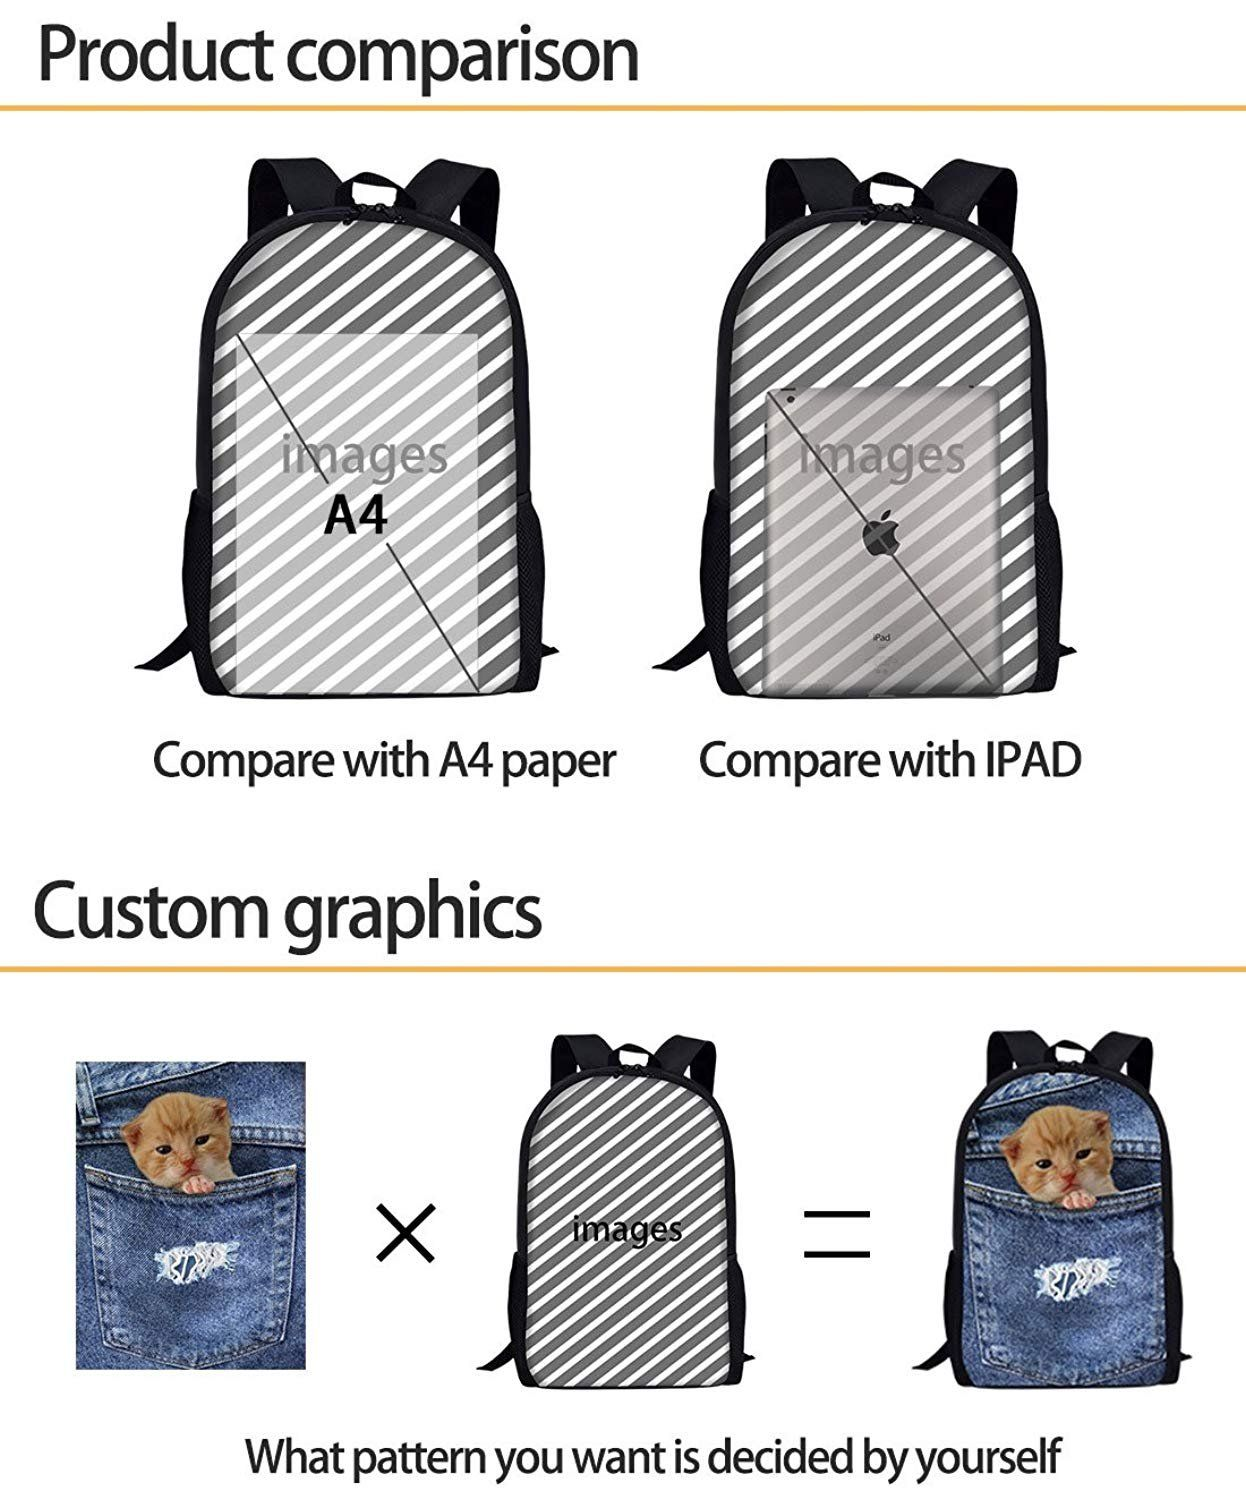 75557b0a0a60 iPrint Kids School Backpack Cars,Inner View of Exquisite Sports Car  Steering Wheel Valuable Aesthetic Retro Auto Details Print,Red Plain Bookbag  Travel ...